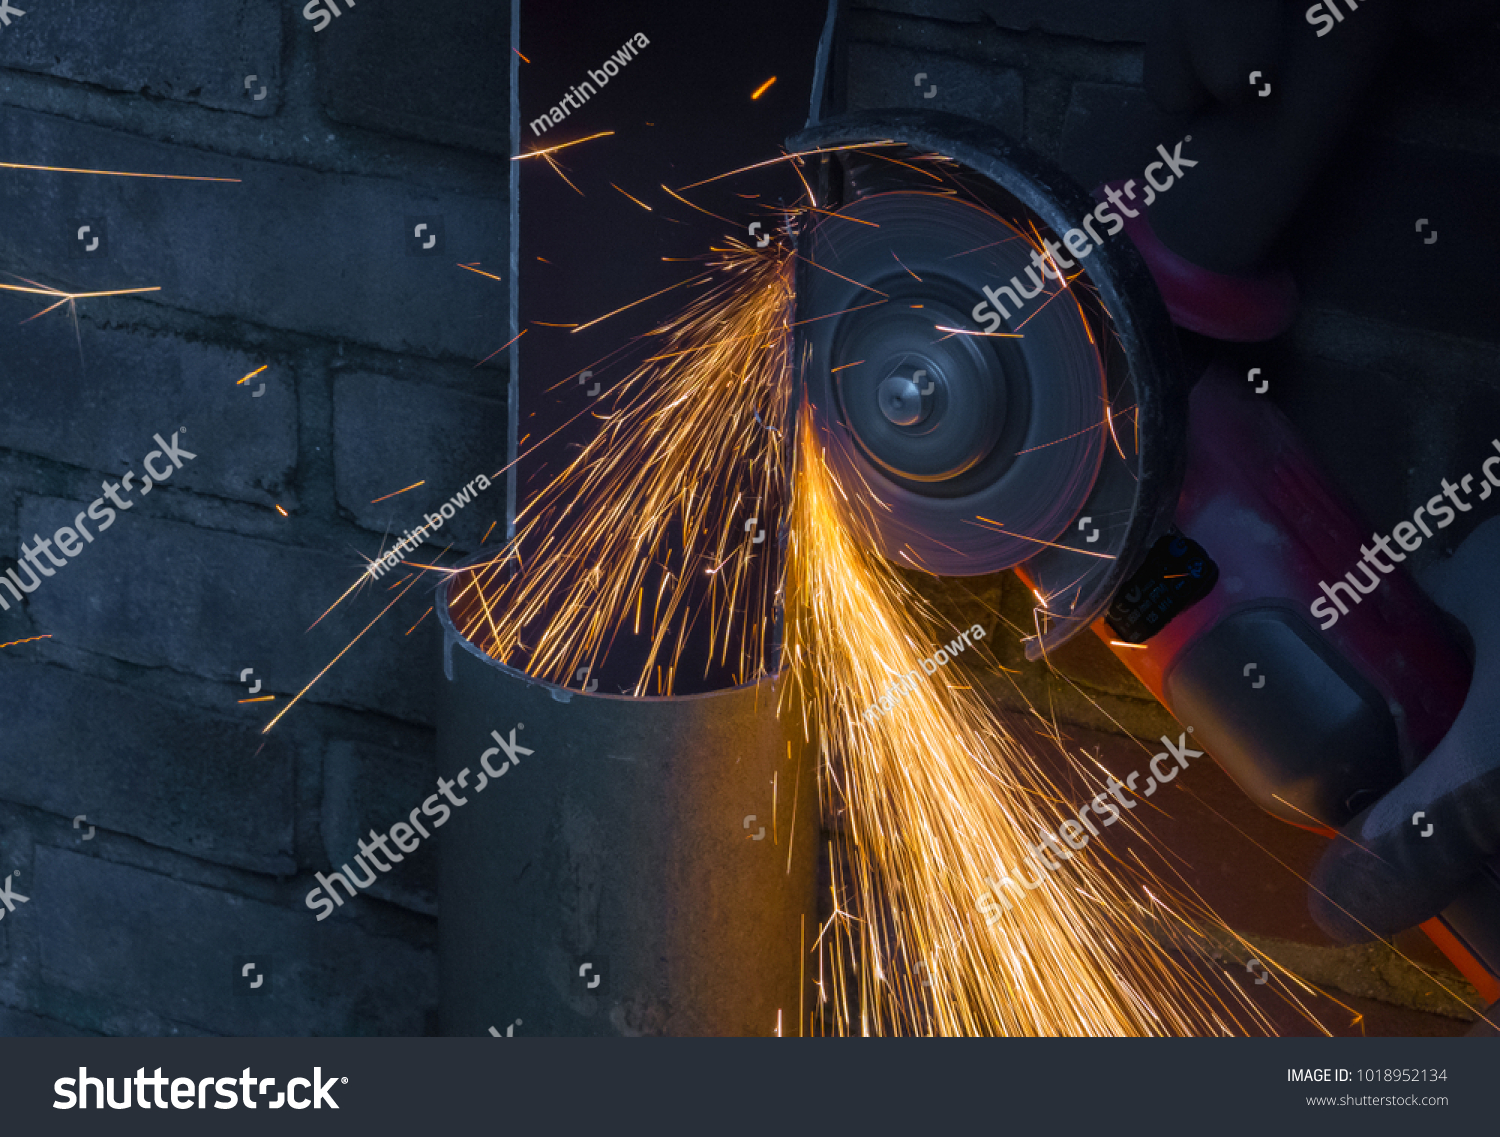 stock-photo-sparks-flying-from-an-angle-